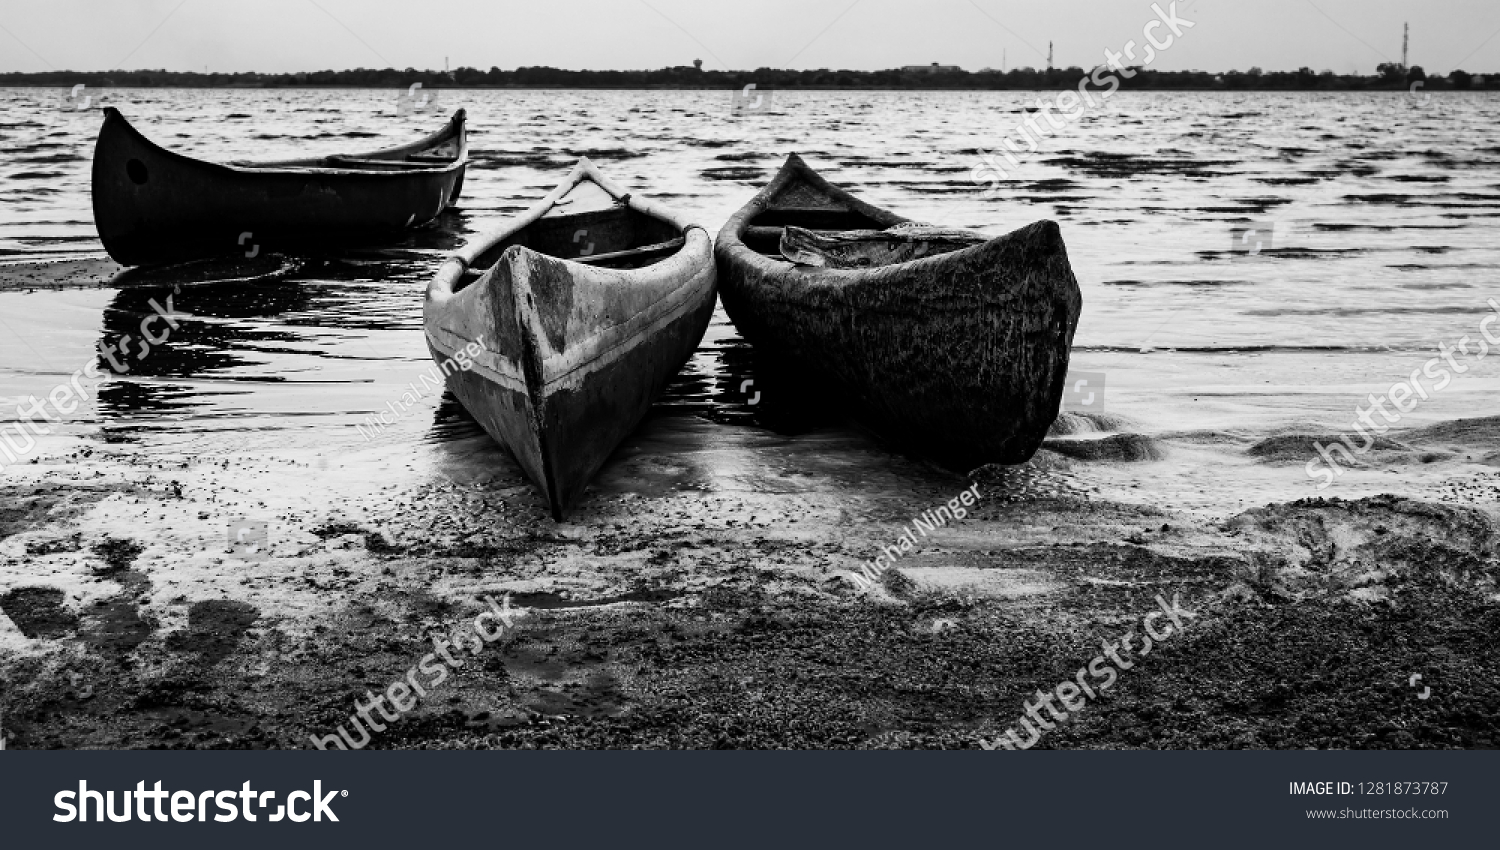 stock-photo-several-canoes-set-on-the-sh